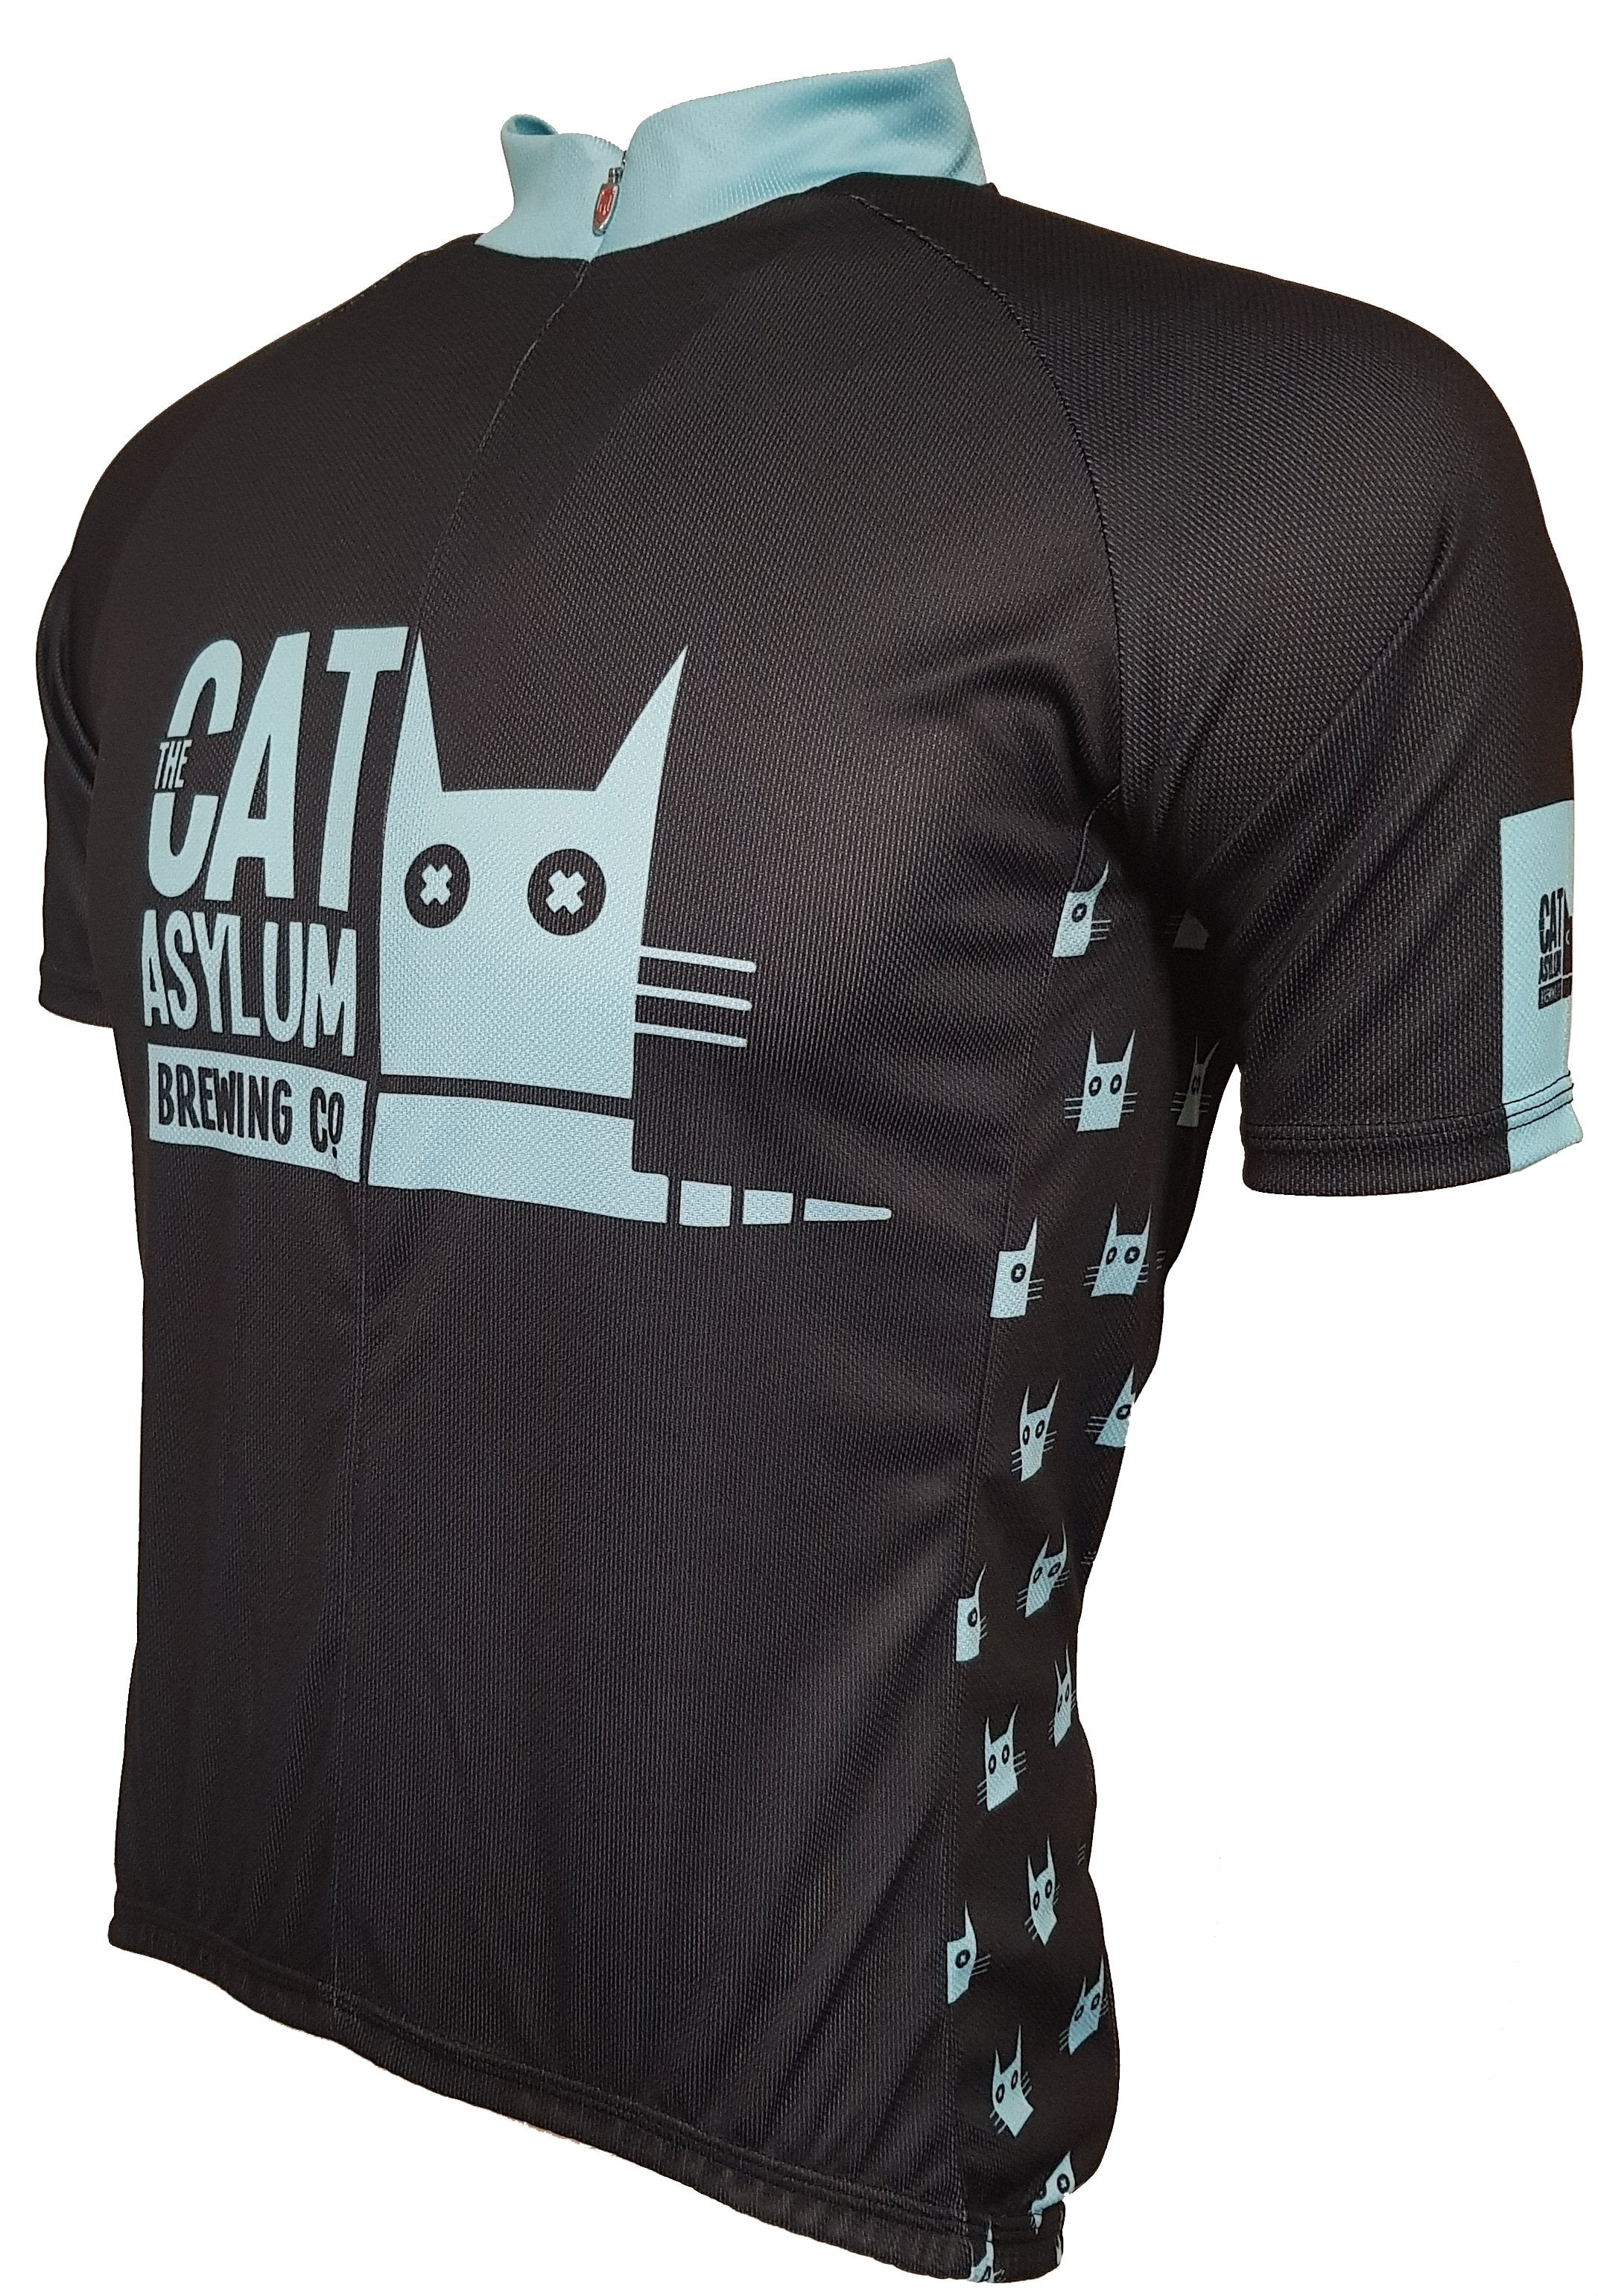 Cat Asylum Road Cycling Jersey Front